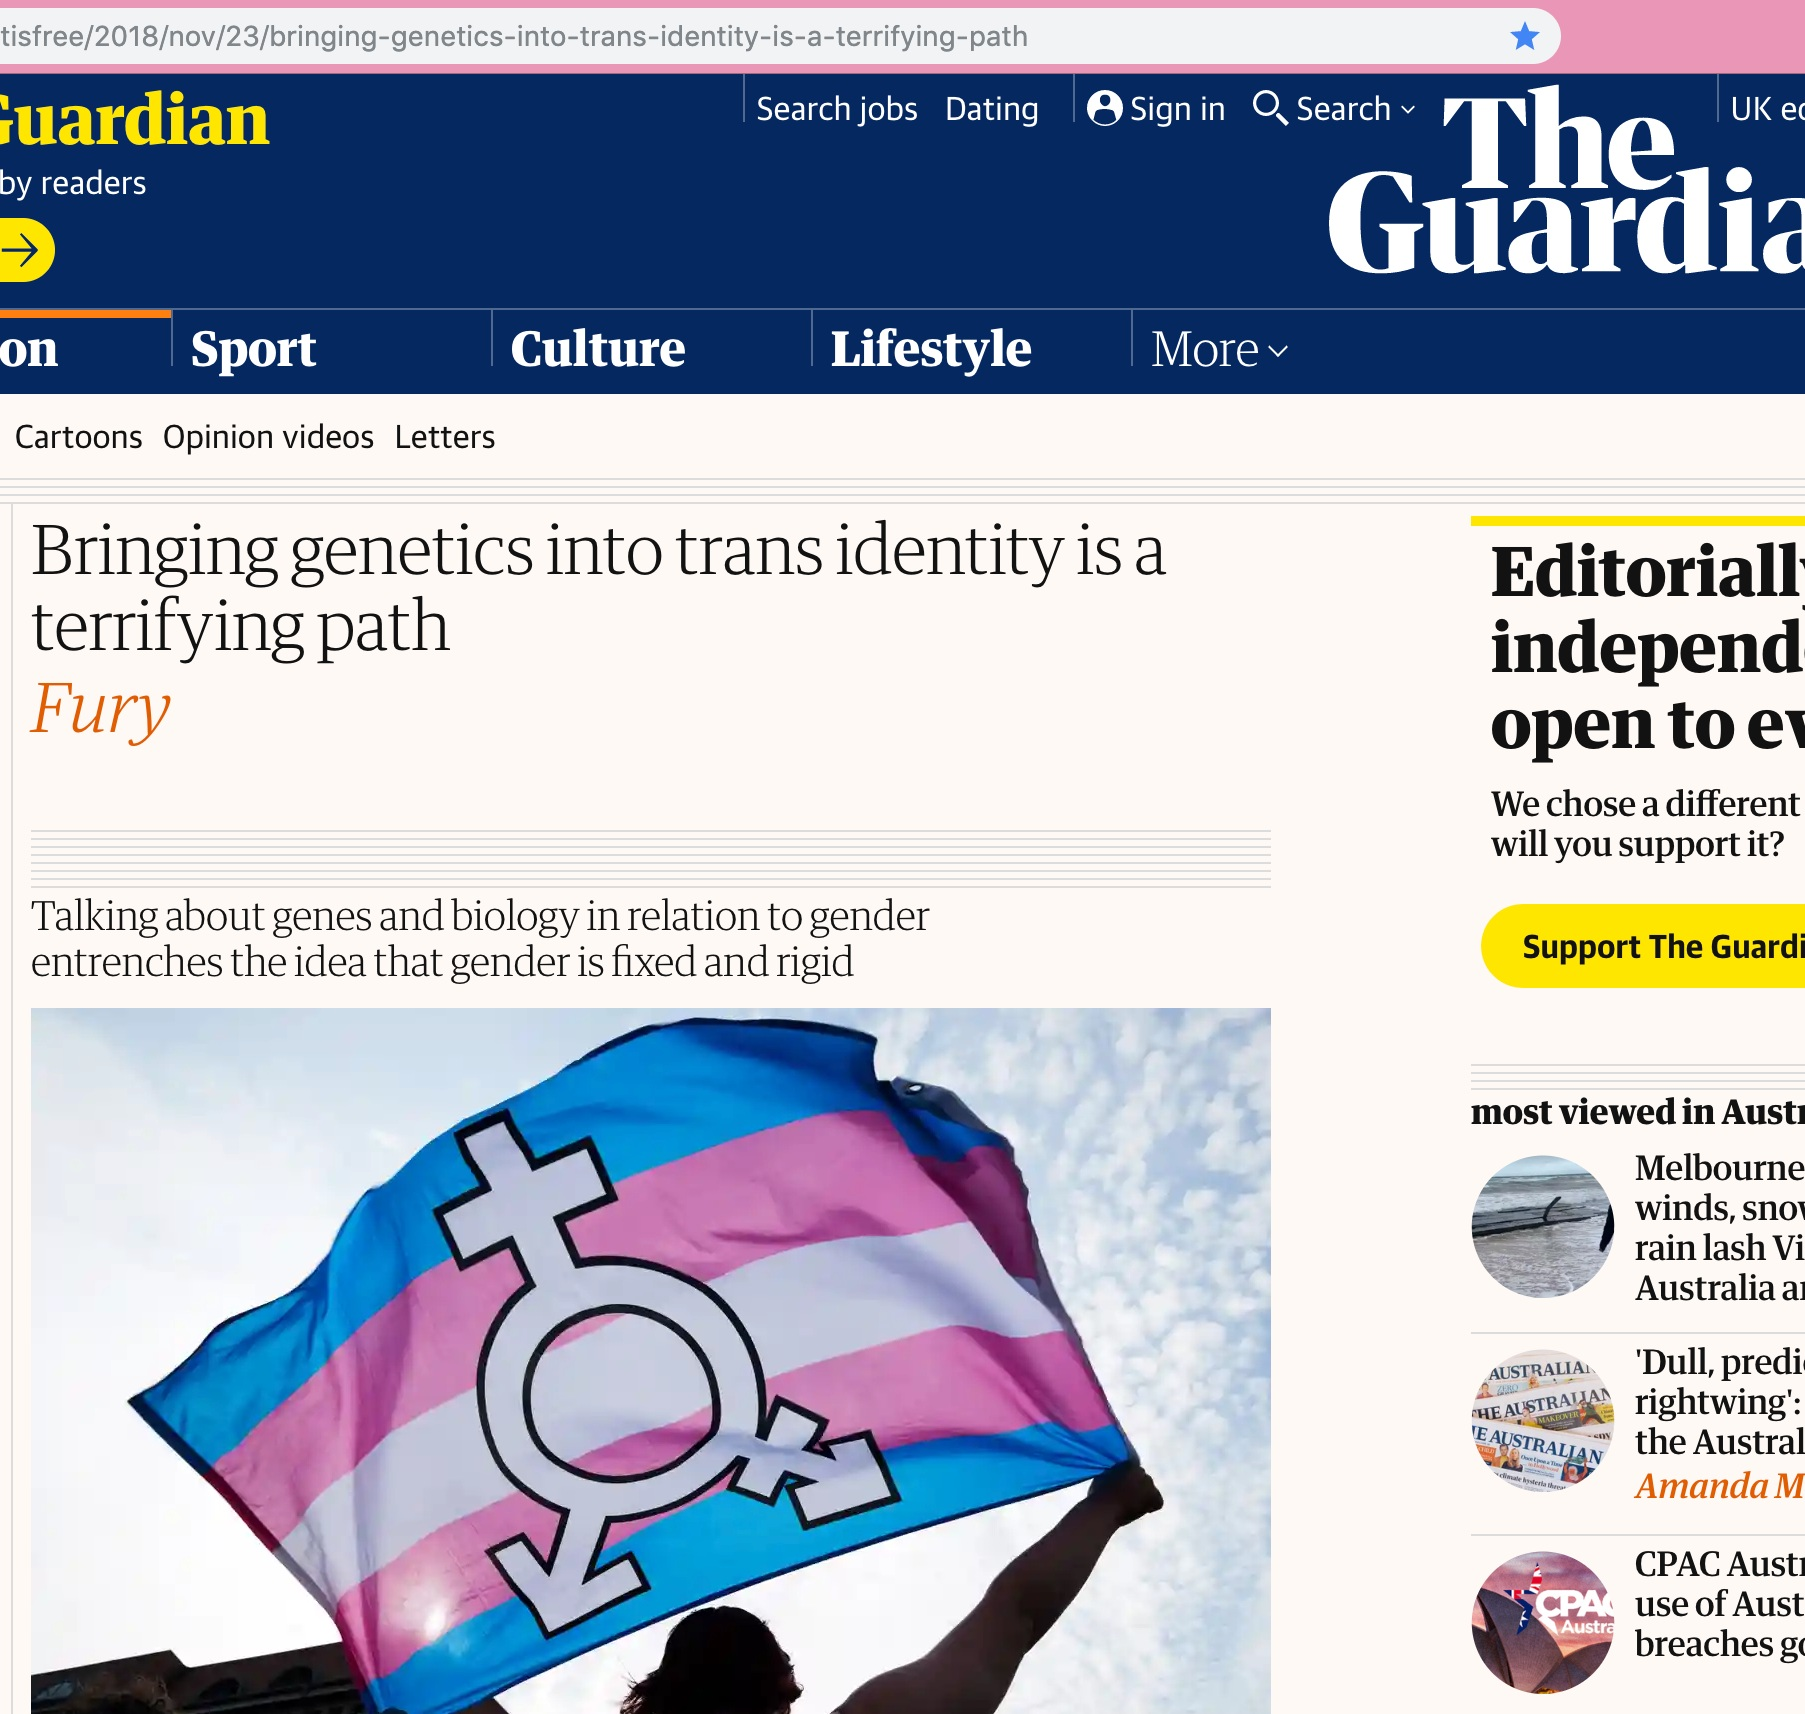 THE+GUARDIAN+2019-08-09+at+9.16.40+pm.jpg